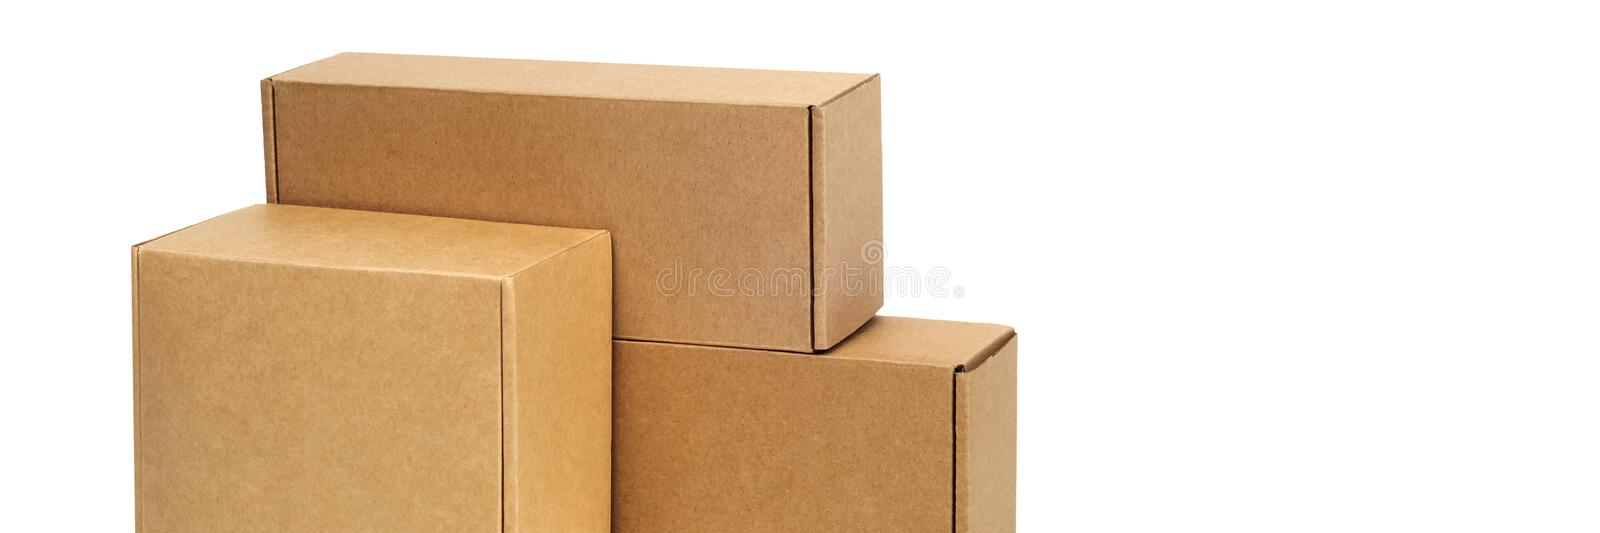 Cardboard boxes for goods on a white background. Different size. Isolated on white background.  stock photo